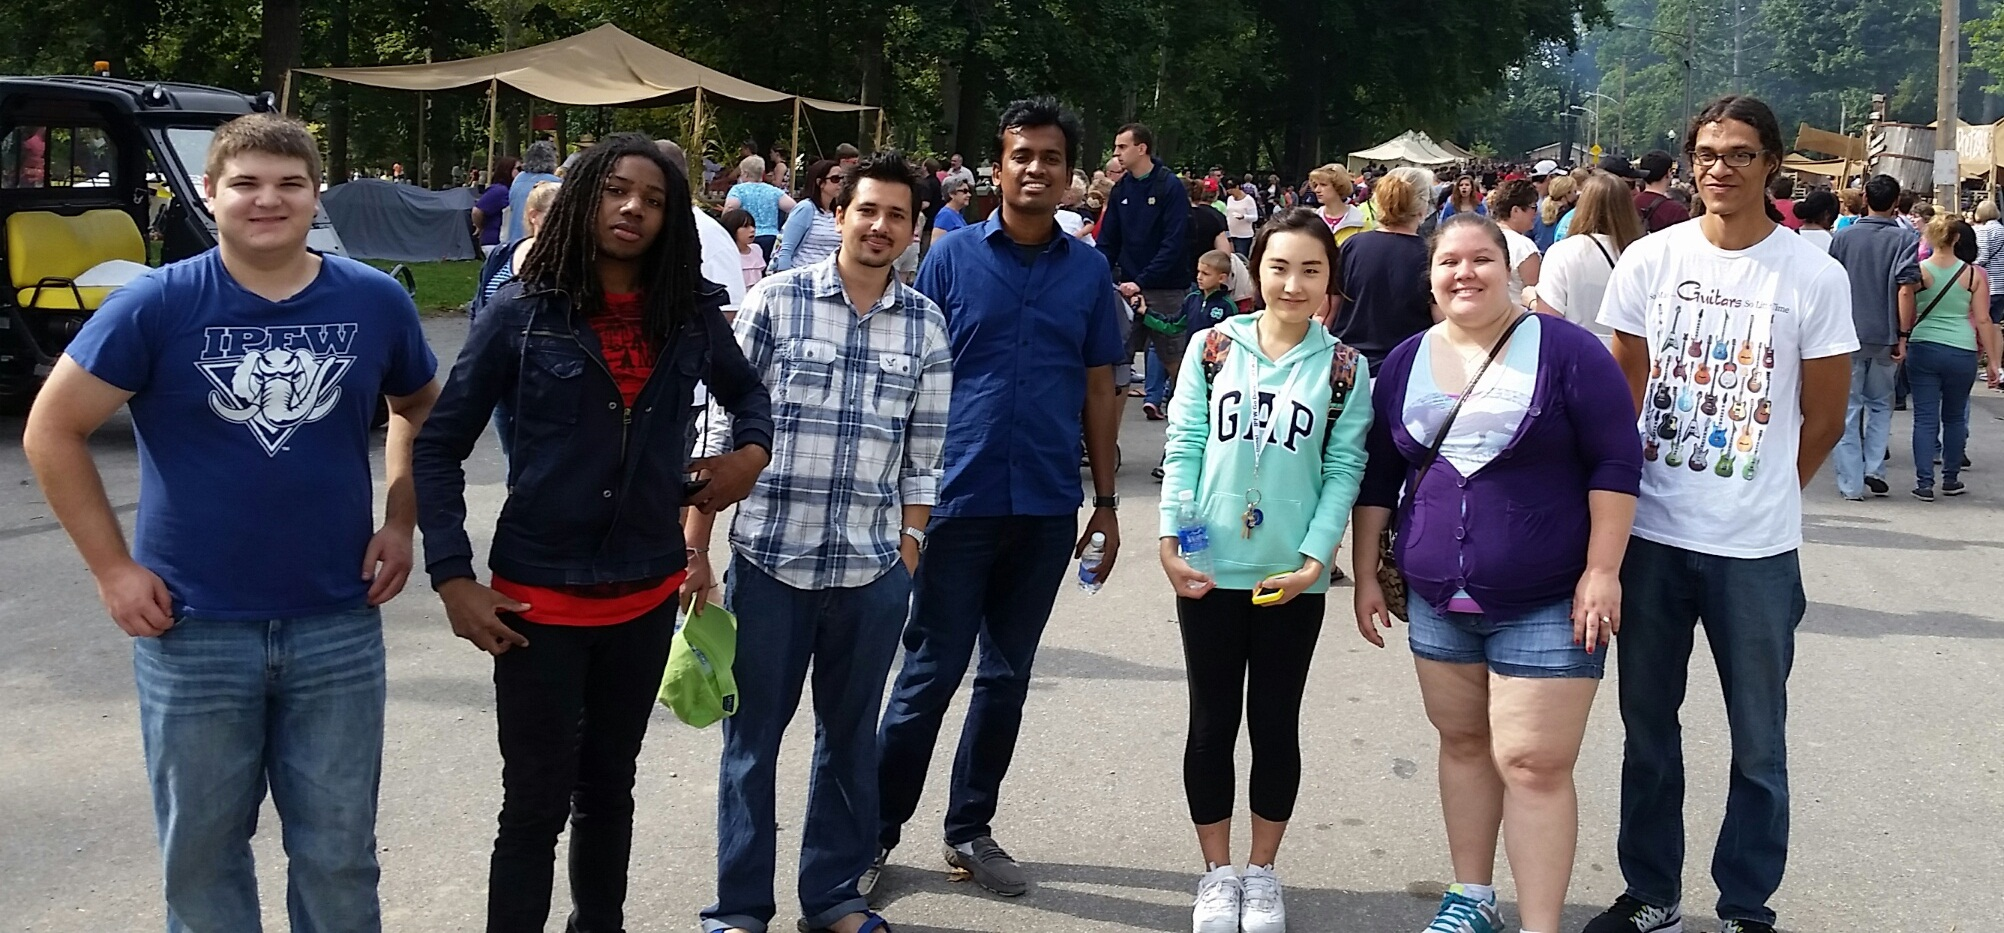 IPFW Students at Johnny Appleseed Festival